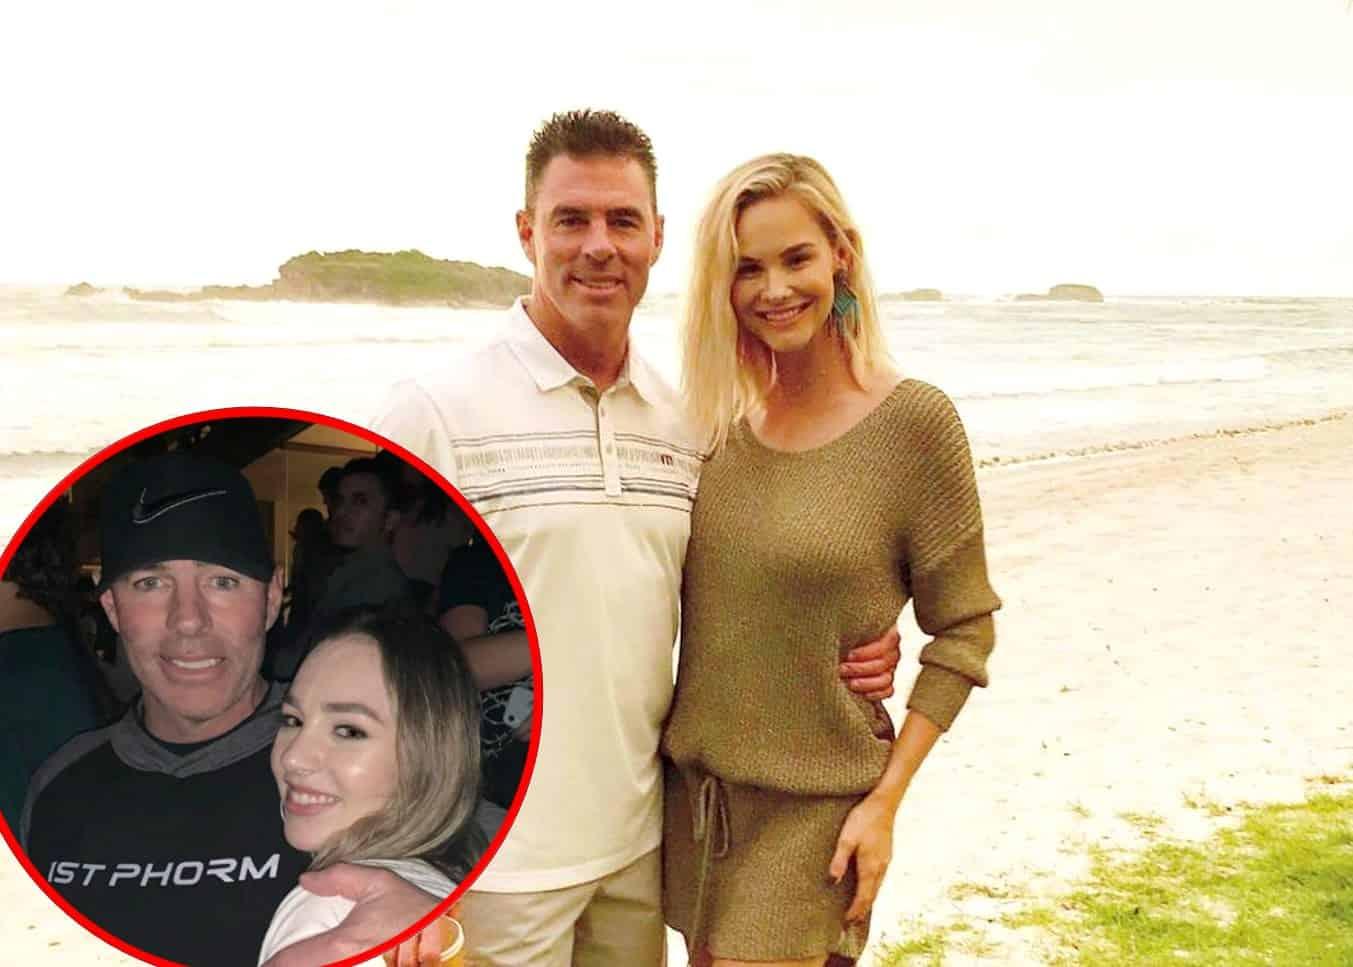 RHOC's Jim Edmonds Slams Claims He Attended Concert With Nanny After Going With Daughter, He Insists Wife Meghan and His Kids Are His 'Only Worry'